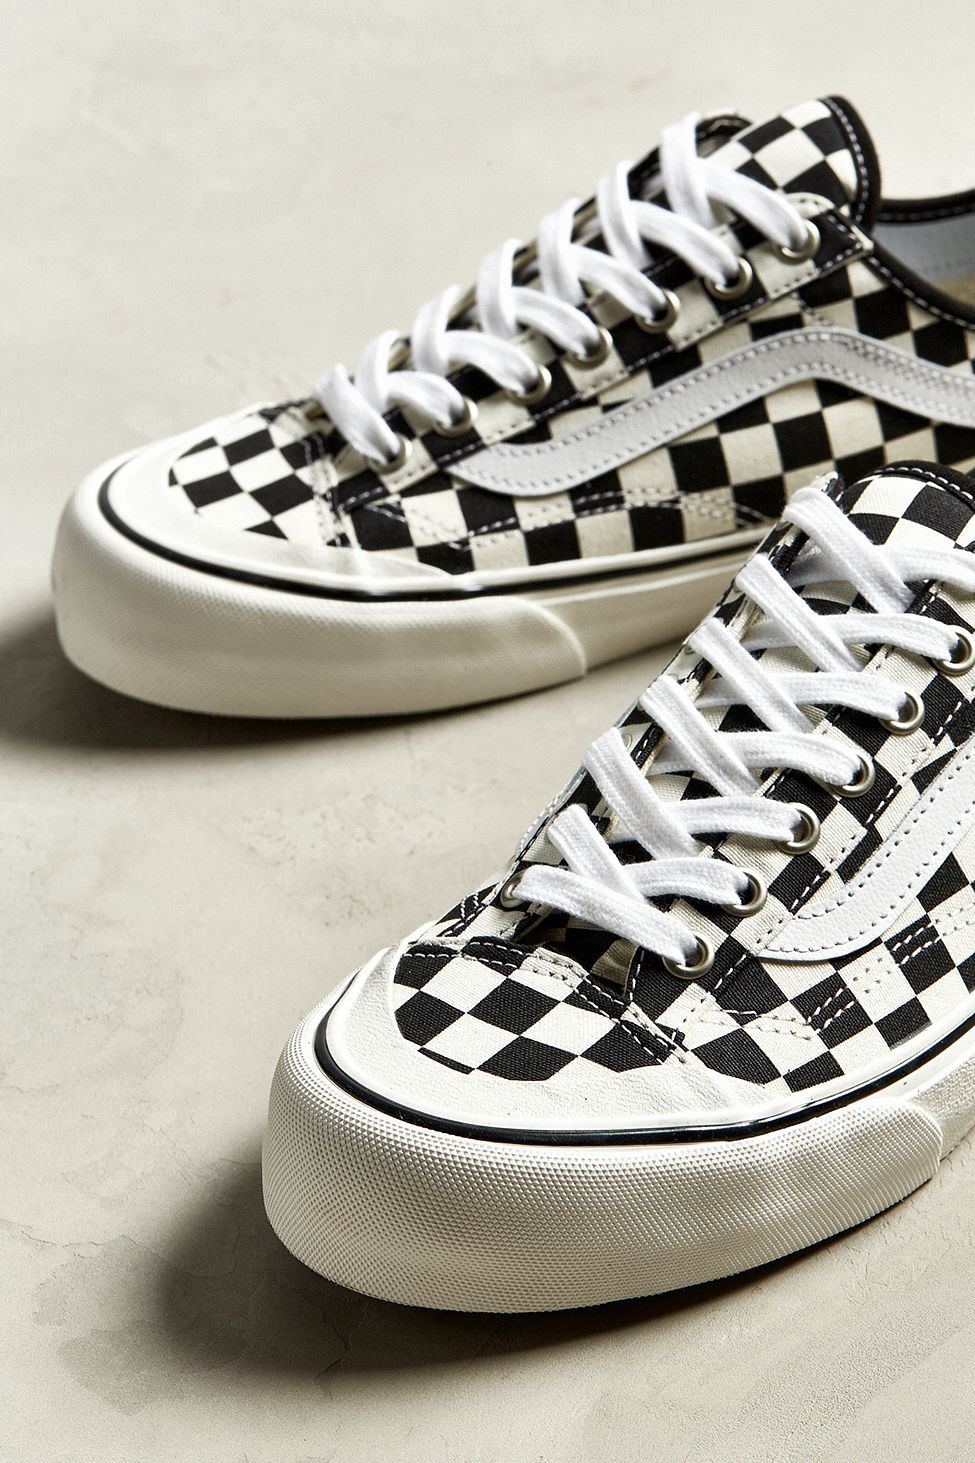 78ac713294 Urban Outfitters Vans Style 36 Decon Sf Checkerboard Sneaker - M 9 W 10.5  One Size